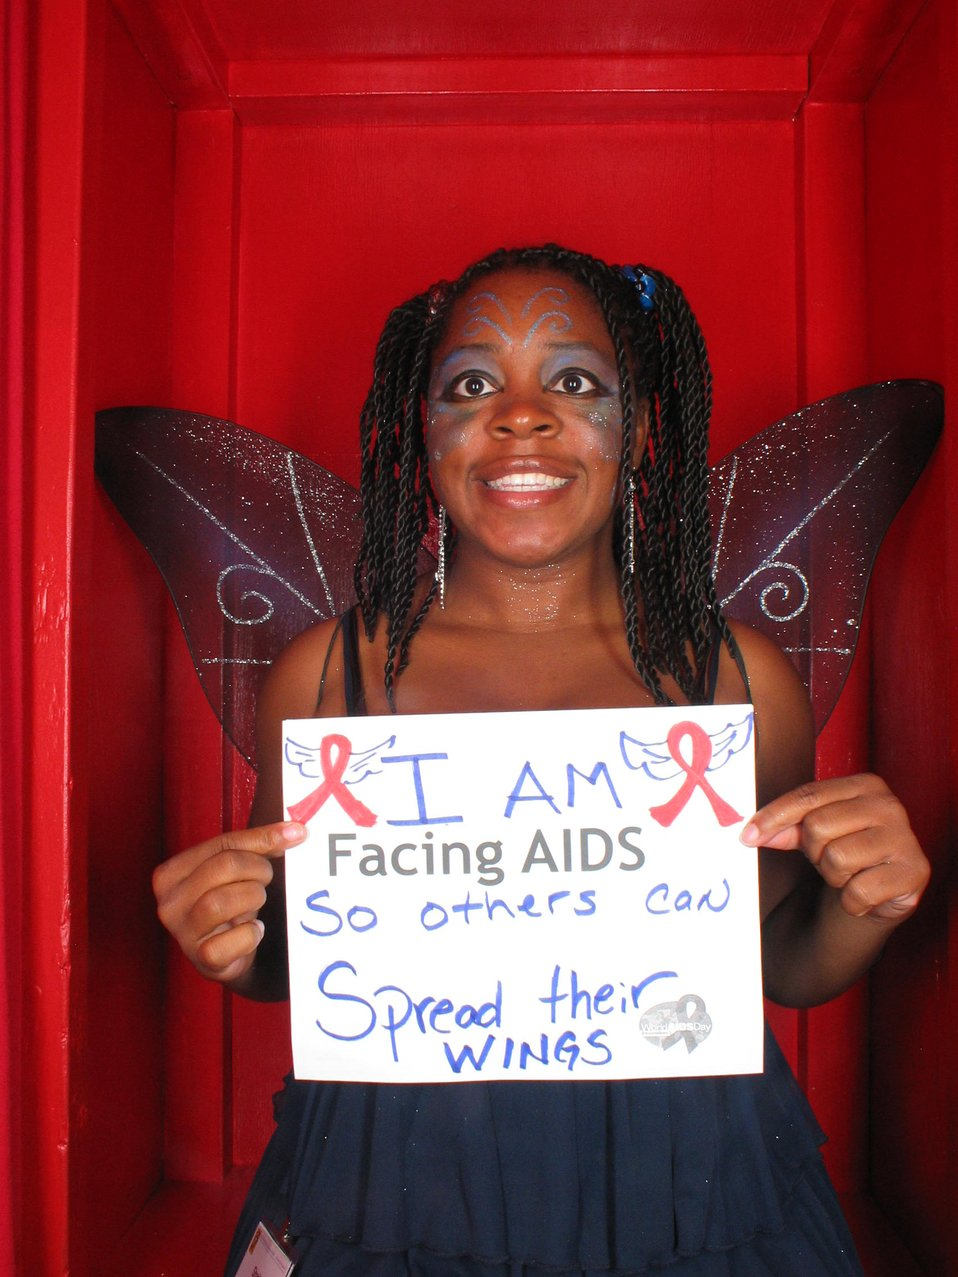 I am Facing AIDS so others can spread their wings.